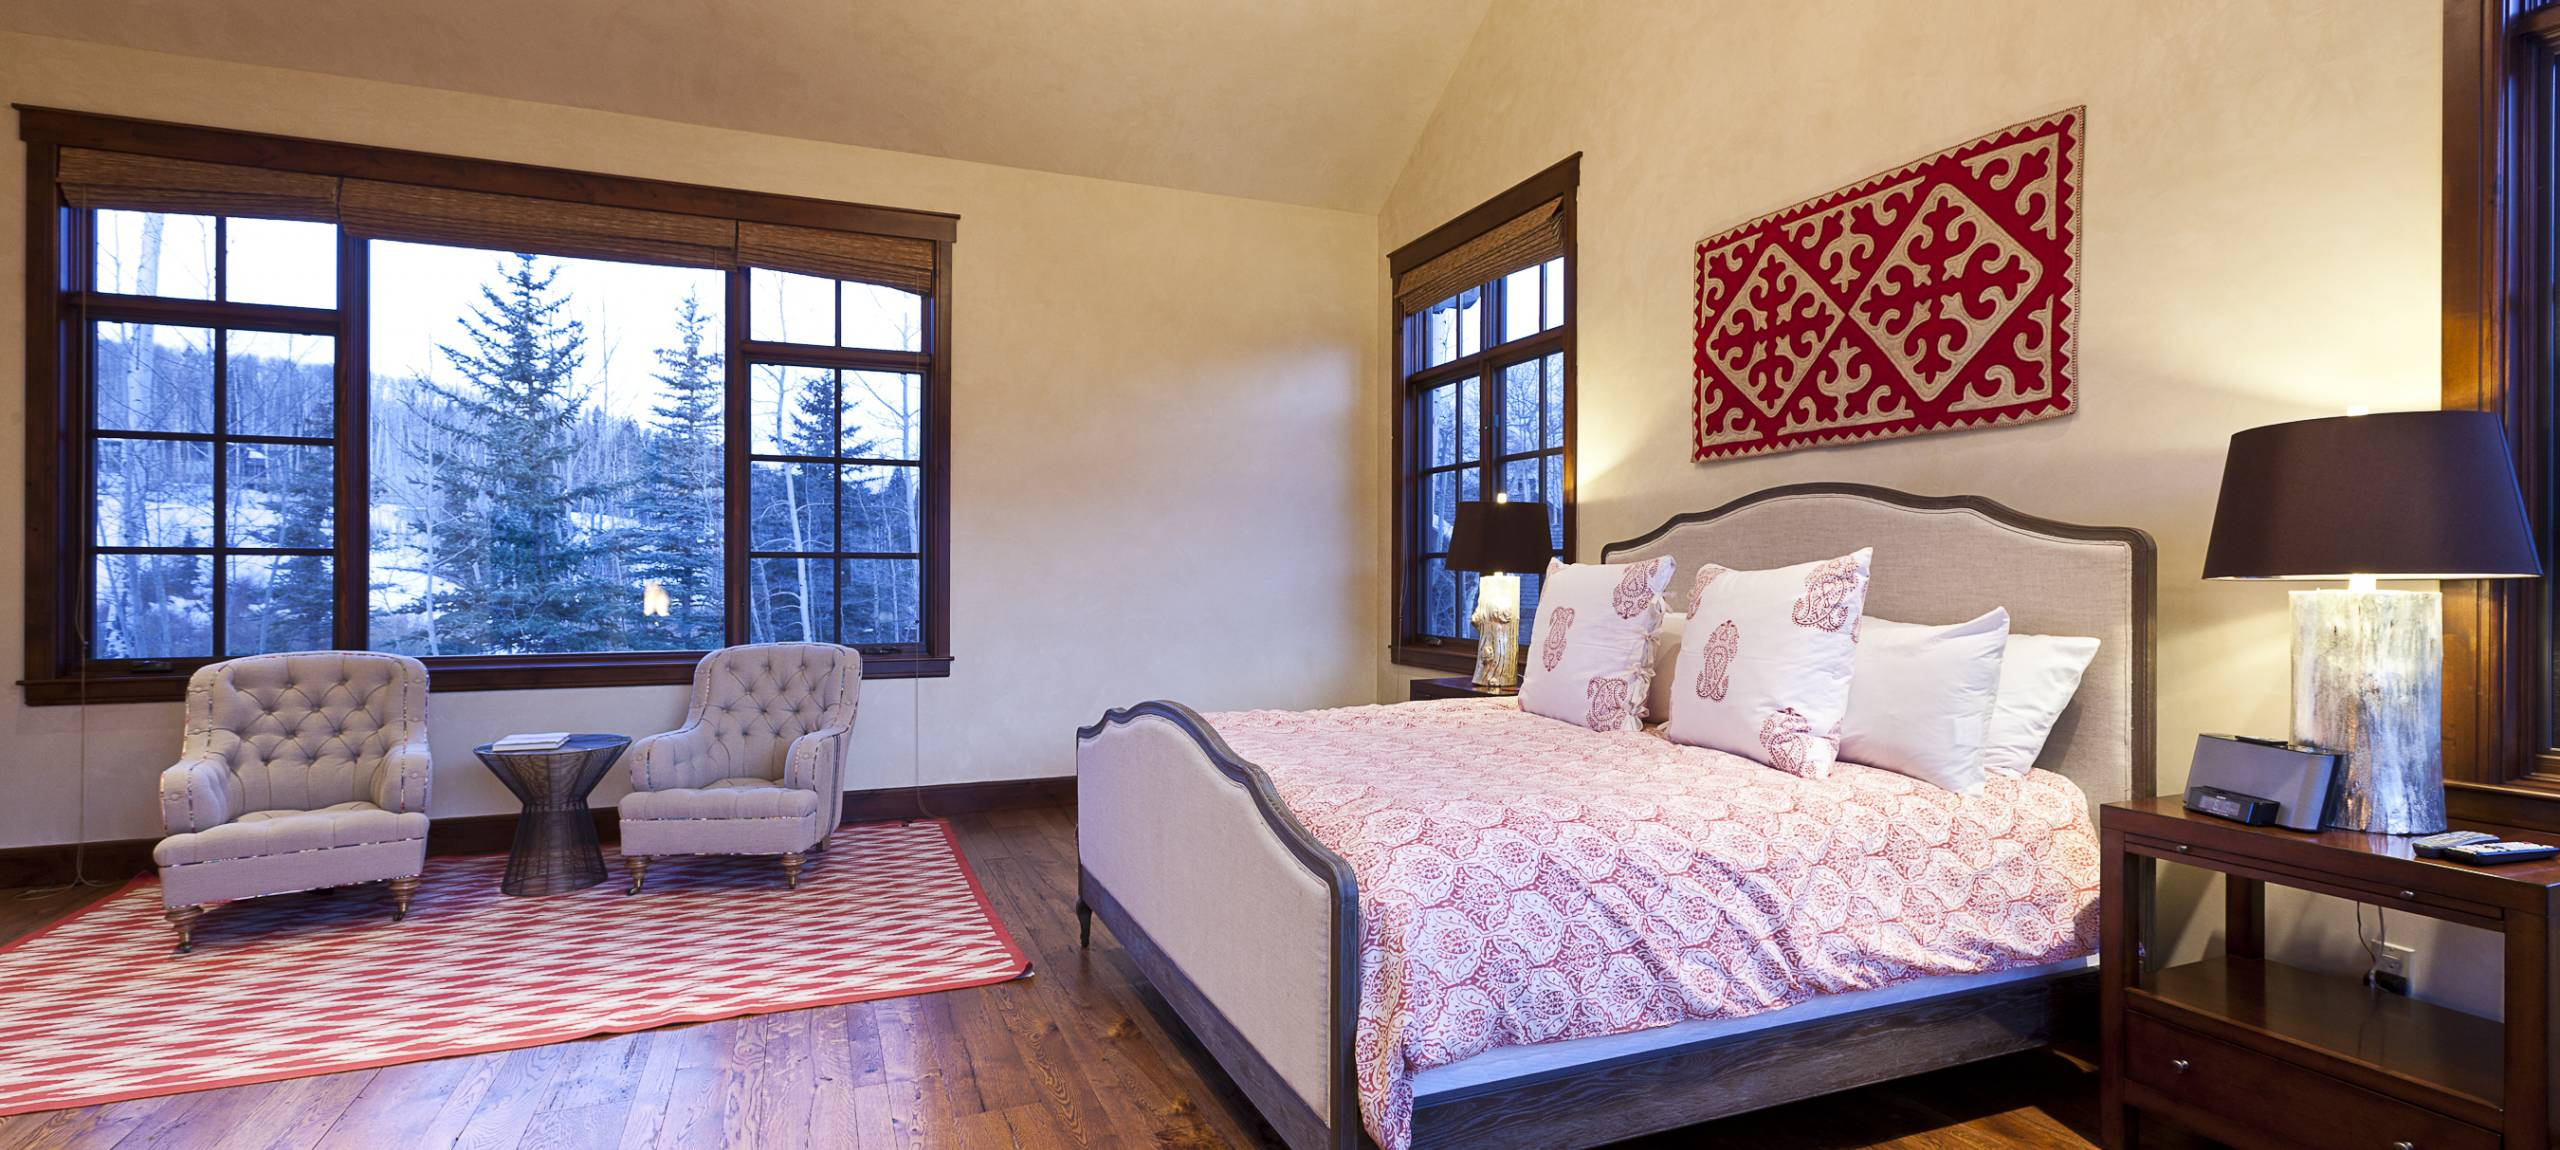 Telluride-Russell-Estate-King-Size-Bed